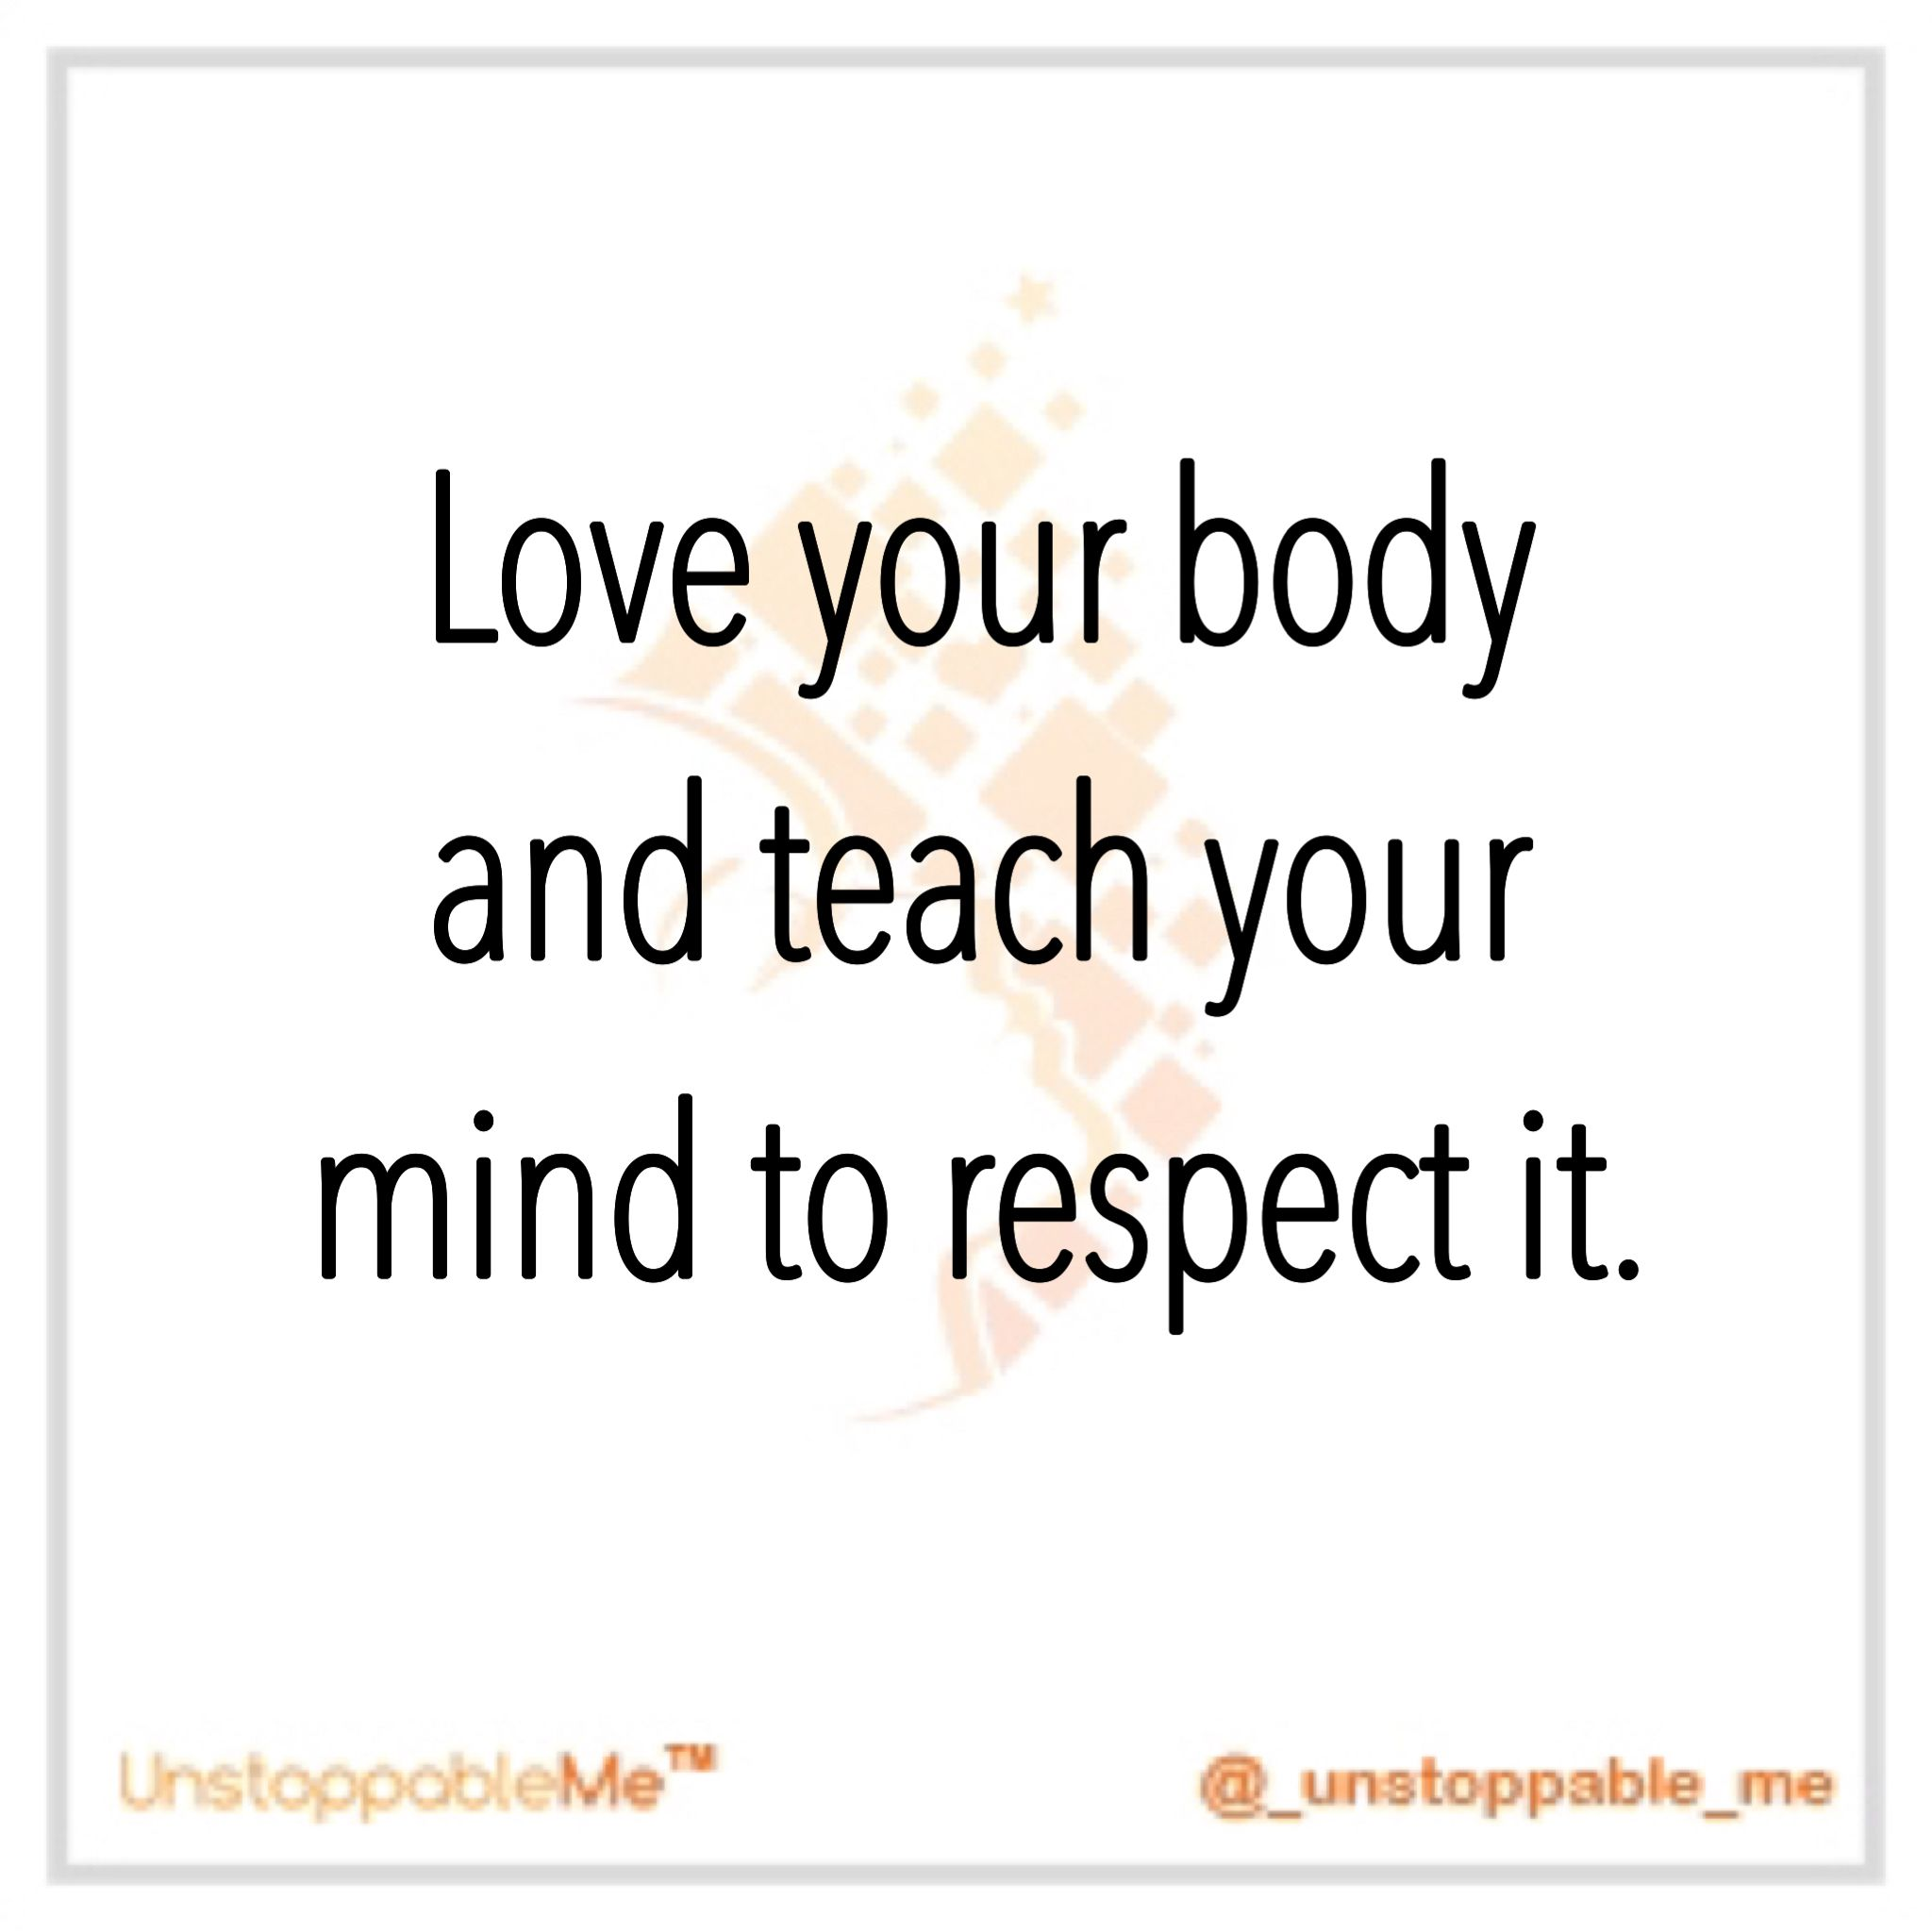 Love Respect Quotes Love And Respect.it's Not Just For Others  It's For Ourselves